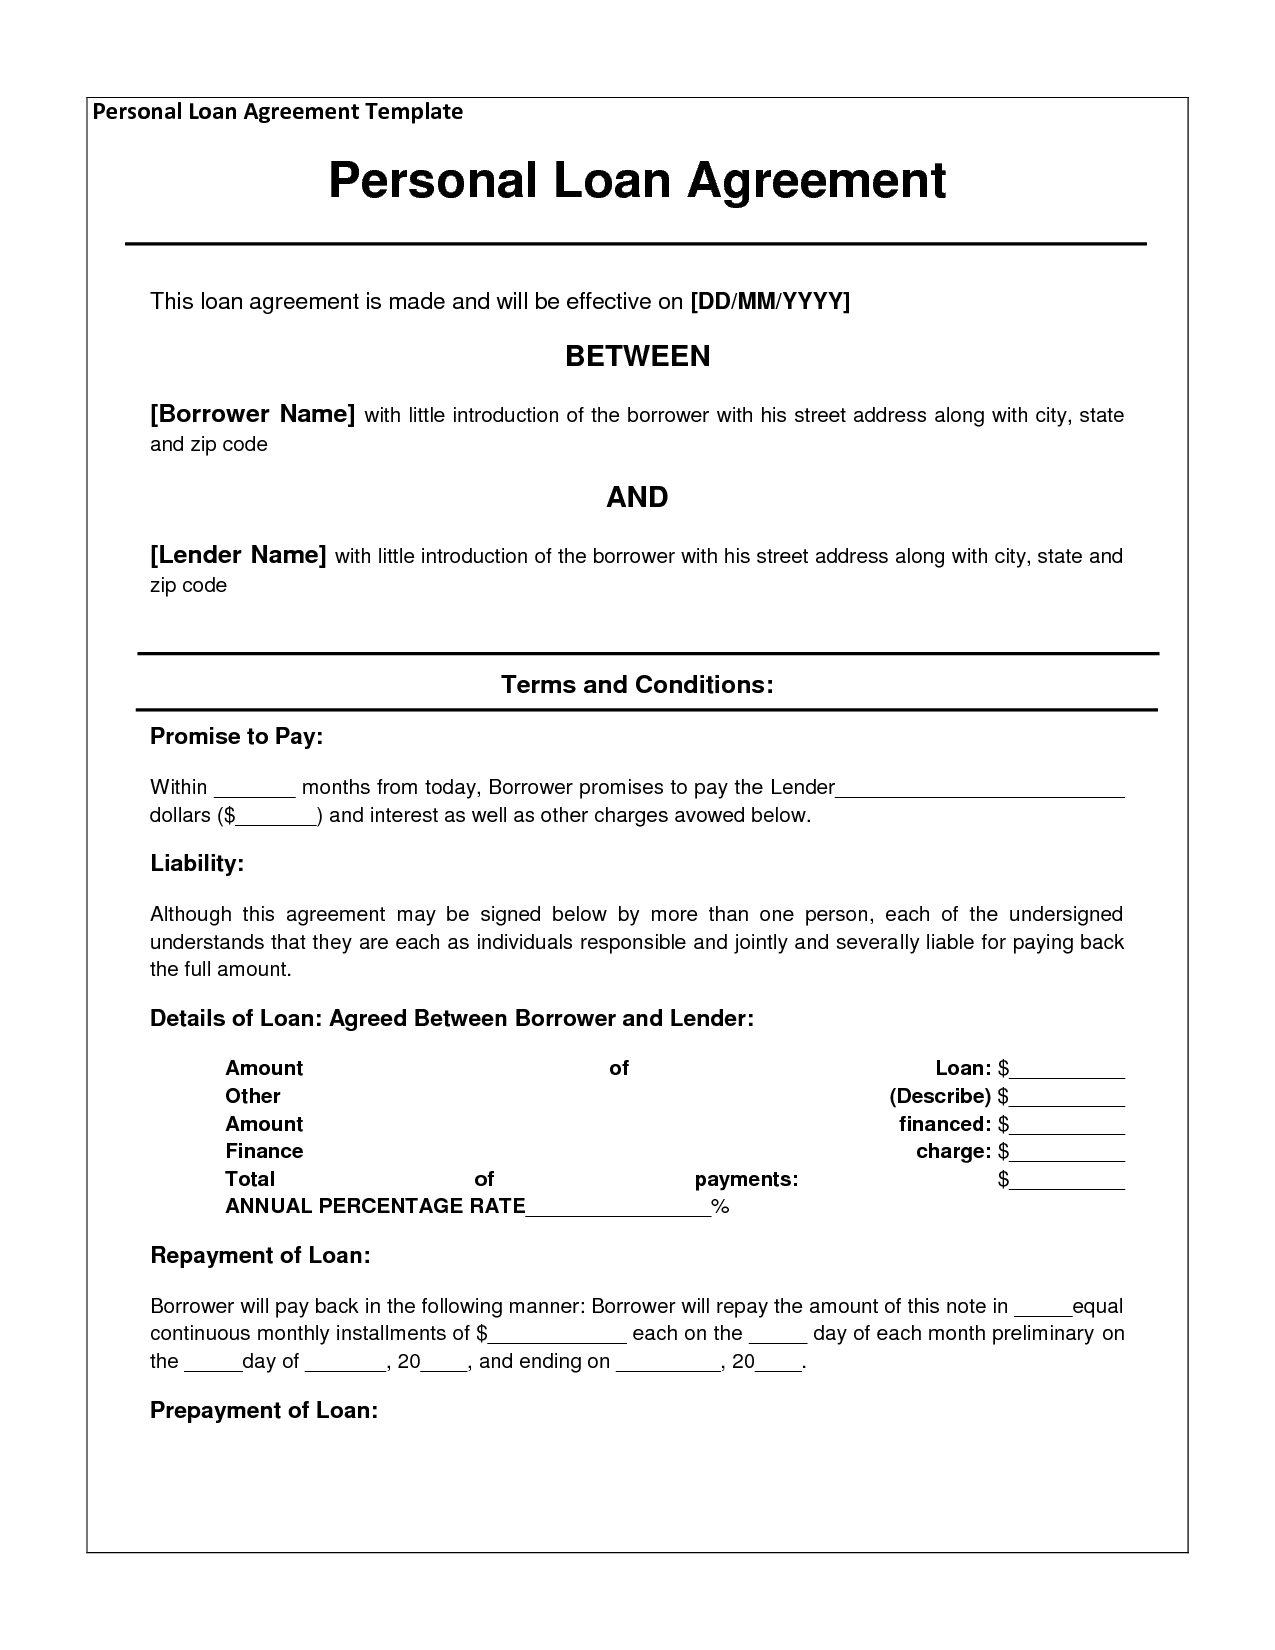 free personal loan agreement form template 1000 approved in 2 private loan agreement template free